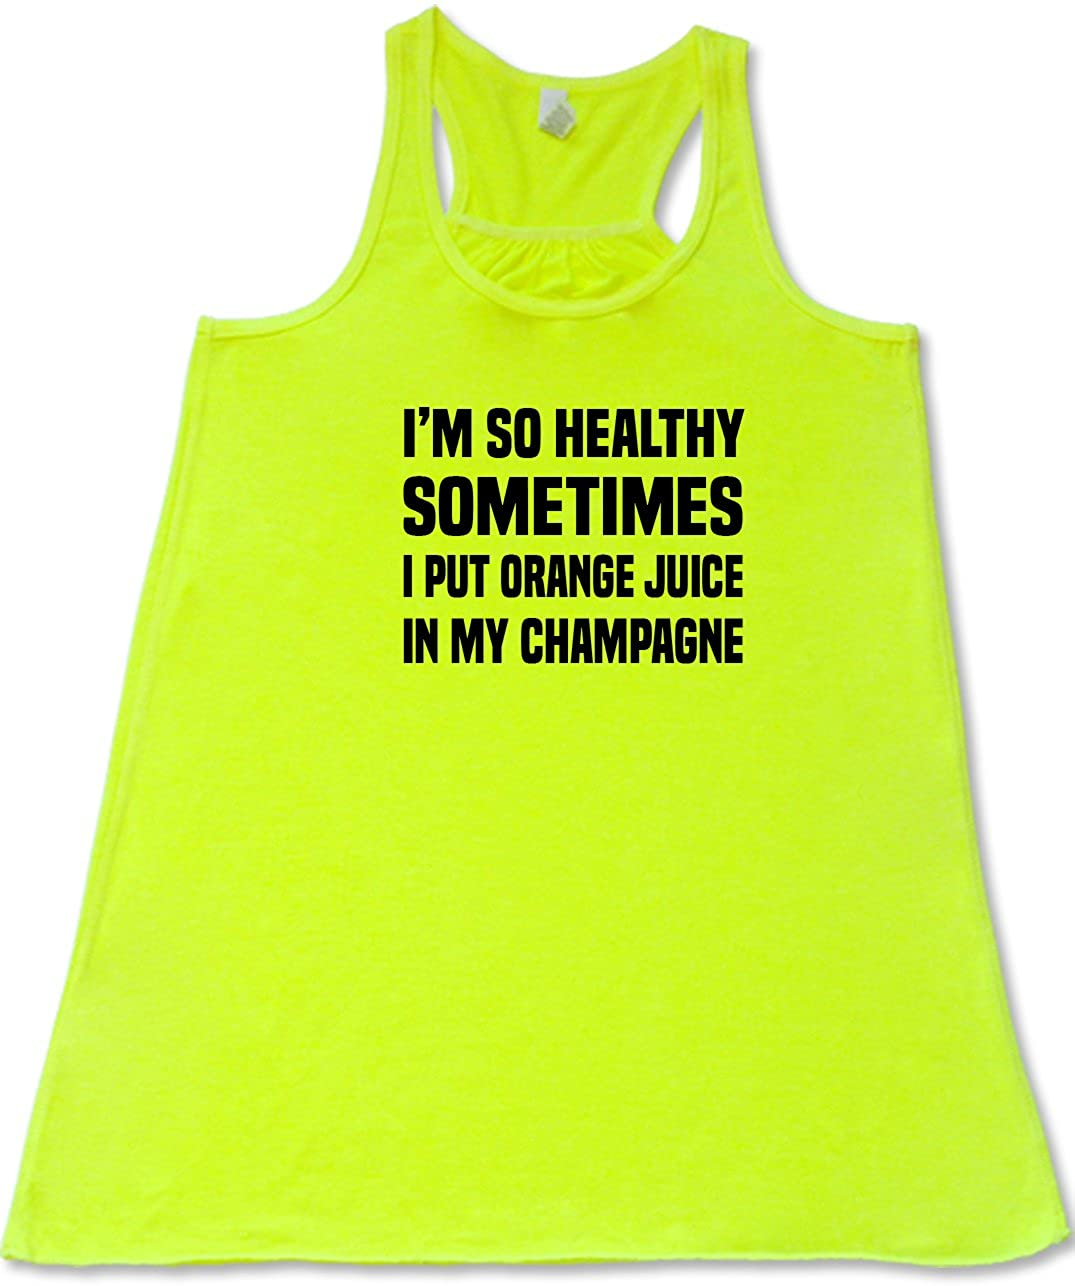 Constantly Varied Gear's I'm So Healthy Sometimes I Put Orange Juice In My Champagne Shirt